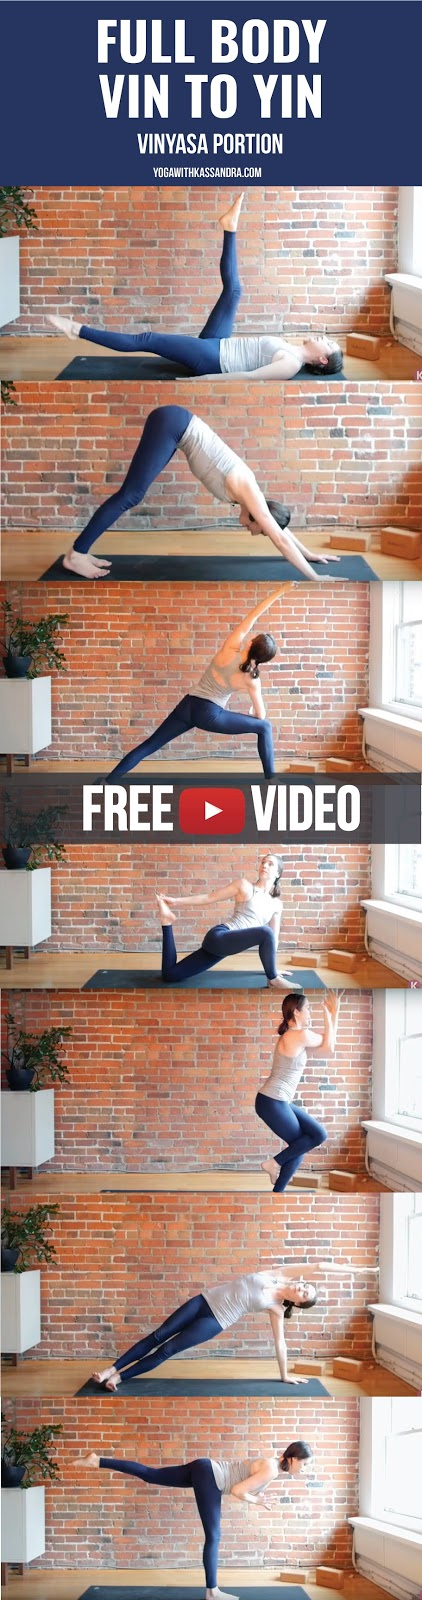 Get both yin and yang, in this well balanced practice! One part is a strong Vinyasa flow, the other is a passive practice of Yin.